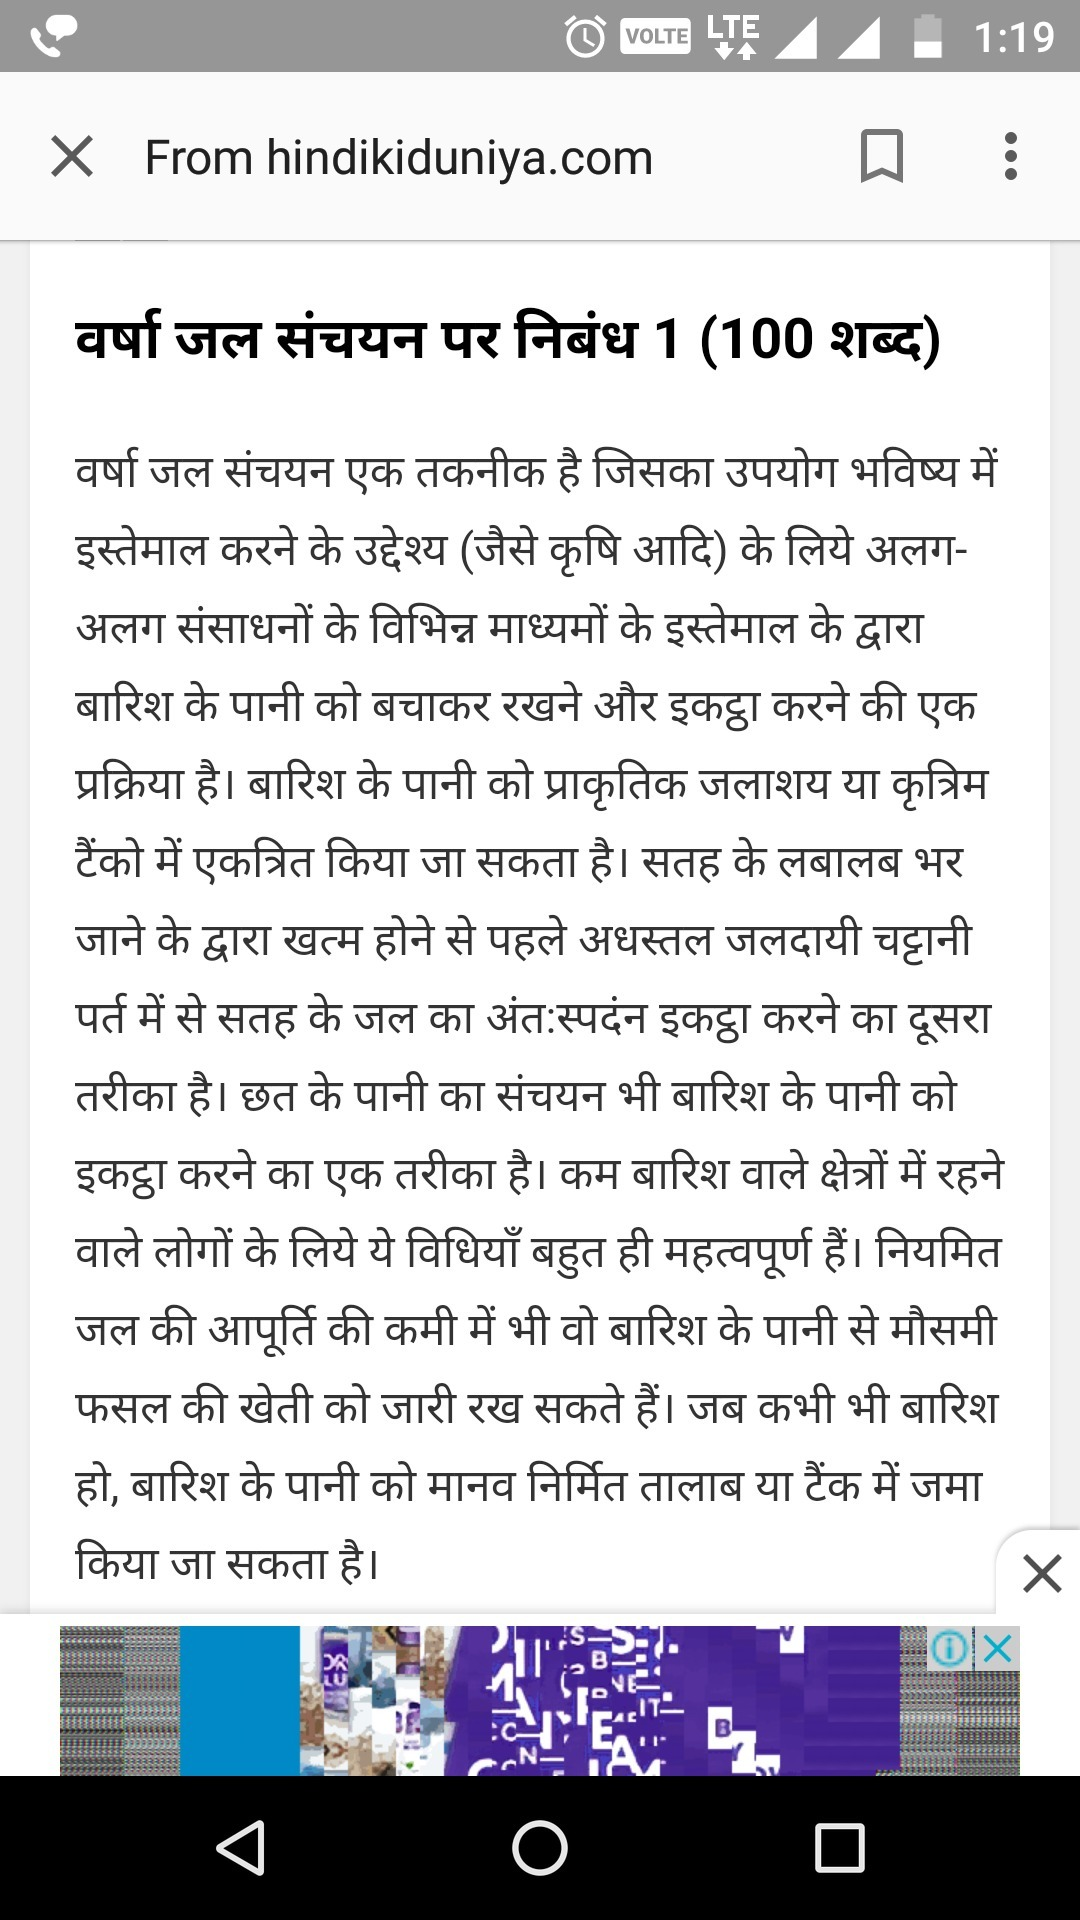 Conservation of water essay in hindi essay educational goals example